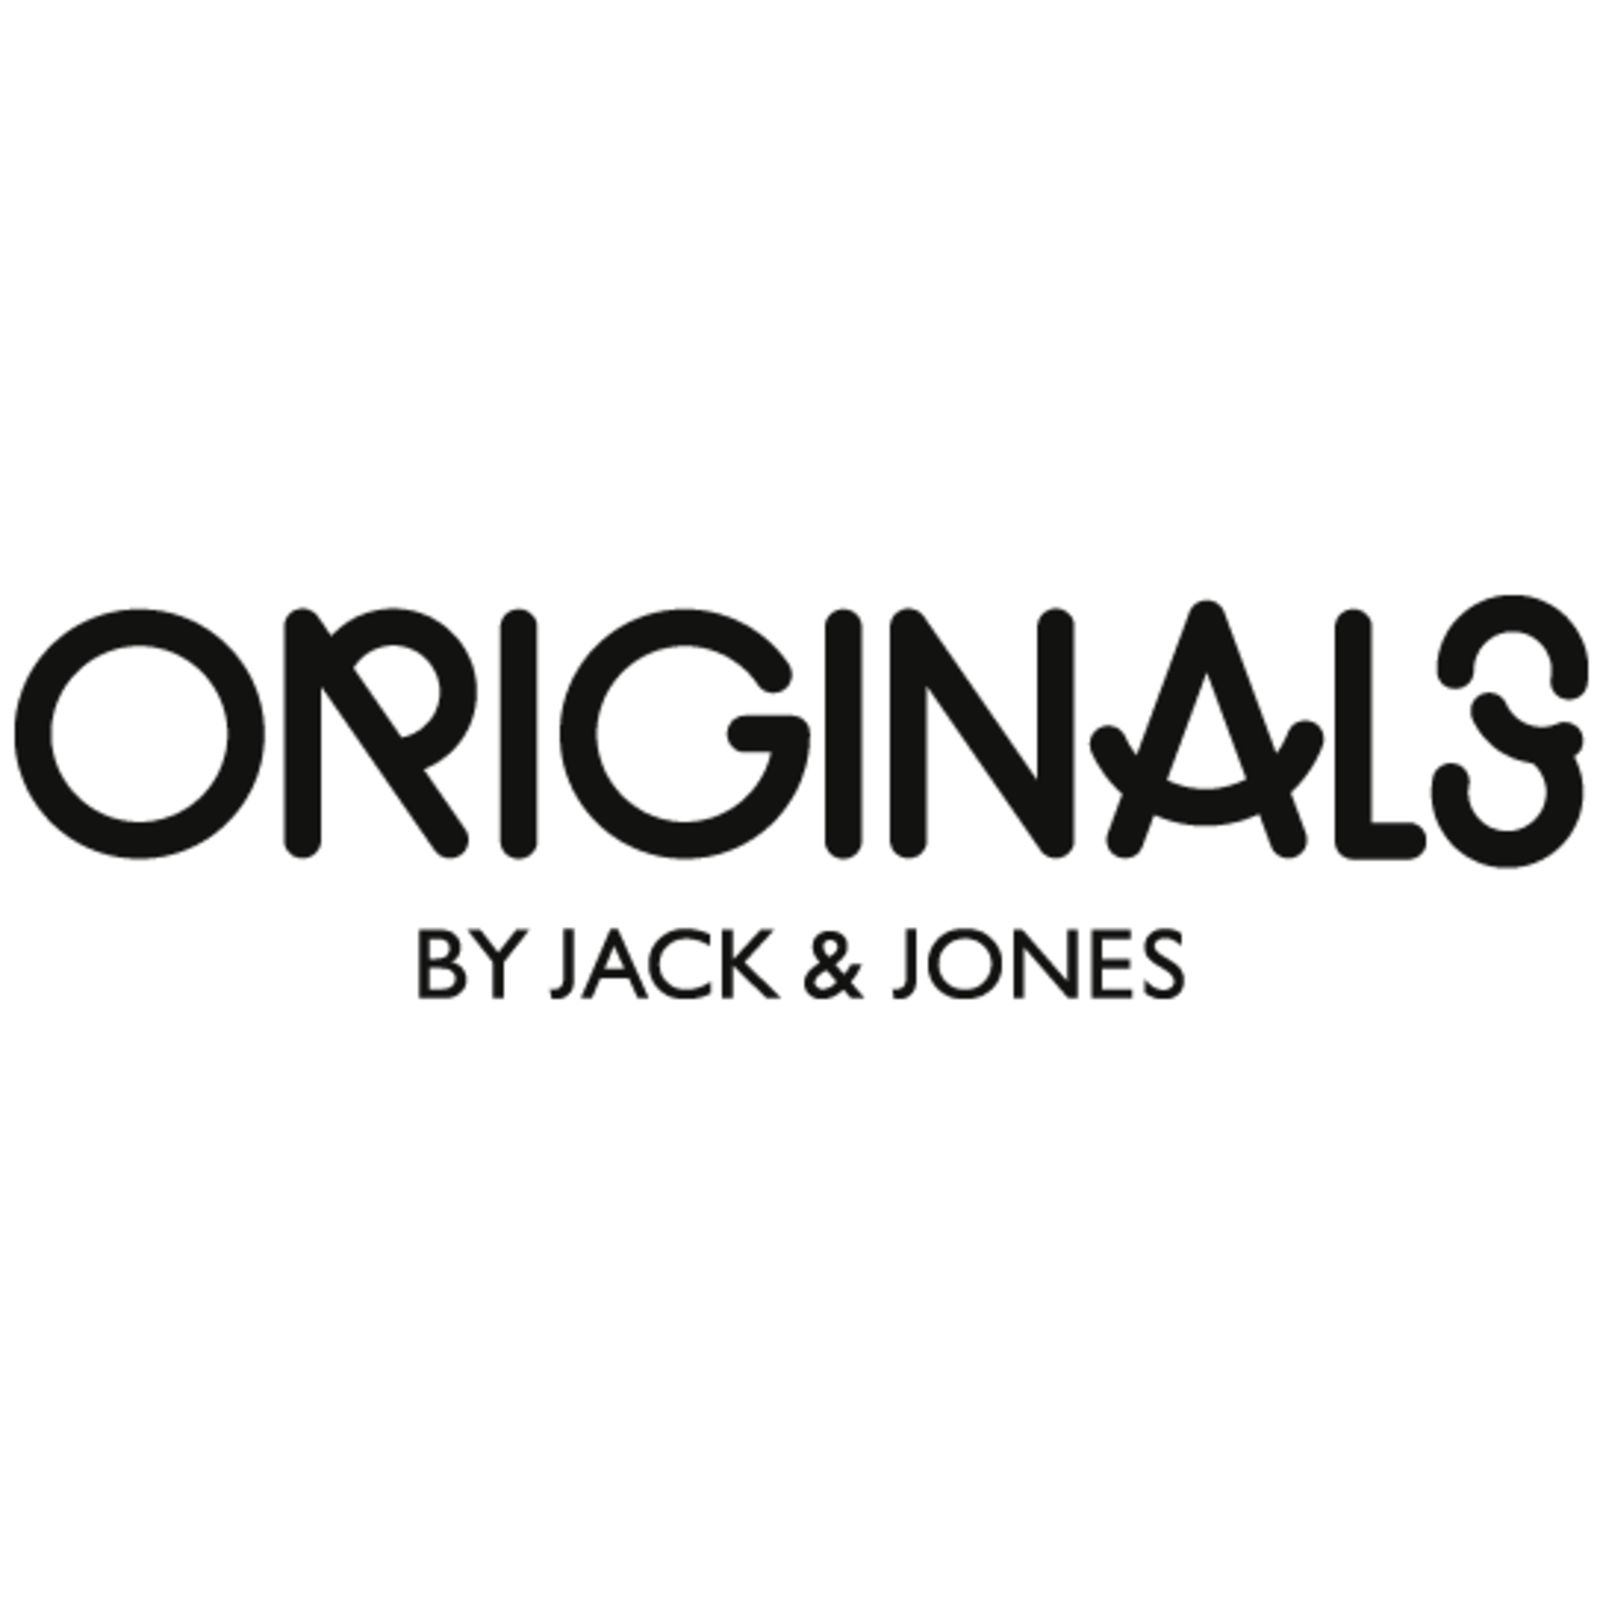 ORIGINALS by JACK & JONES (Image 1)